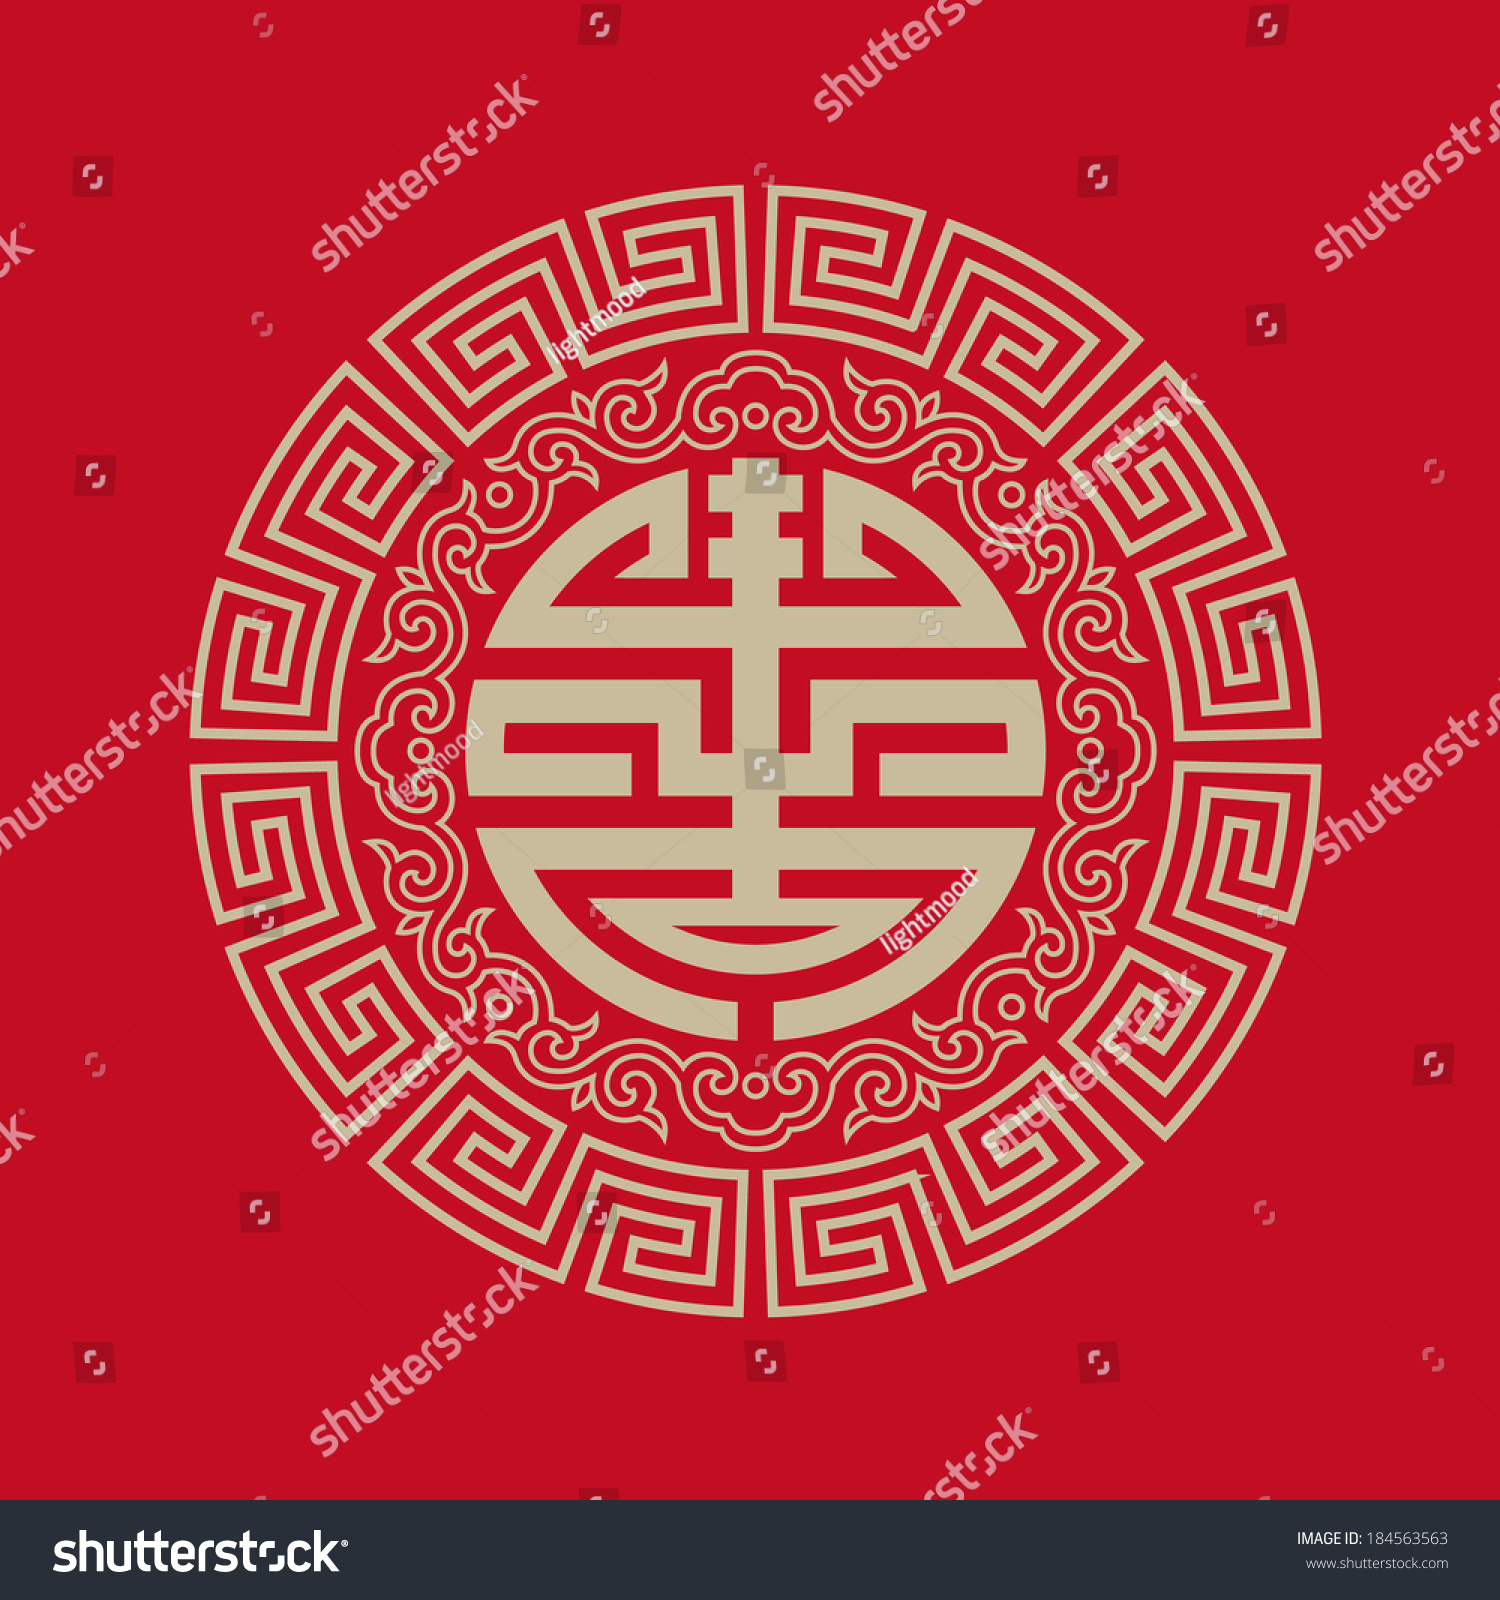 Longevity symbols collectionsymbols this vector chinese stock longevity symbols collectionsymbols of this vector are chinese character meaning biocorpaavc Gallery